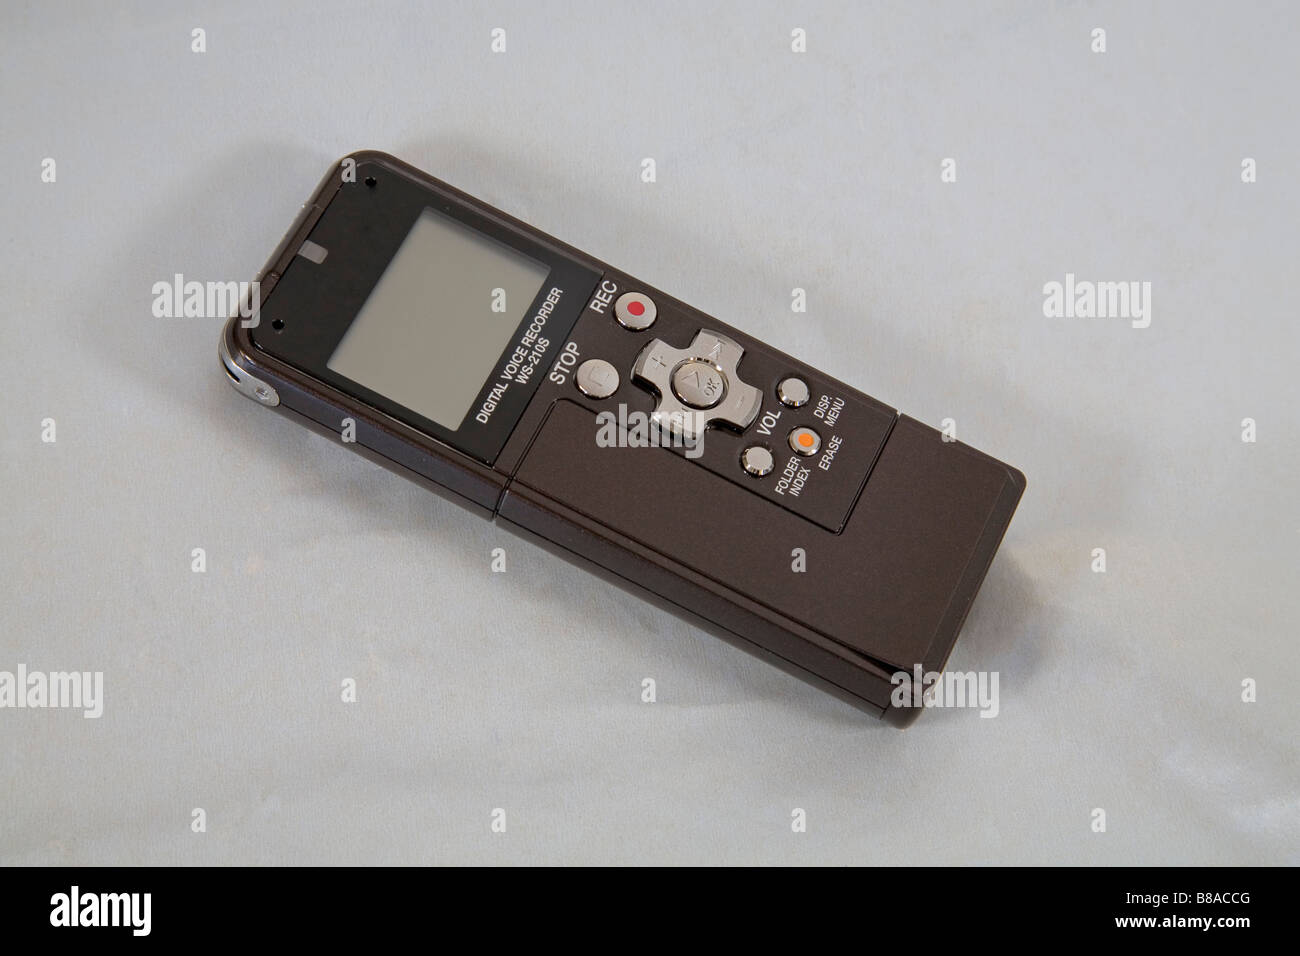 Detail of a digital voice recorder the modern equivalent of a tape recorder - Stock Image